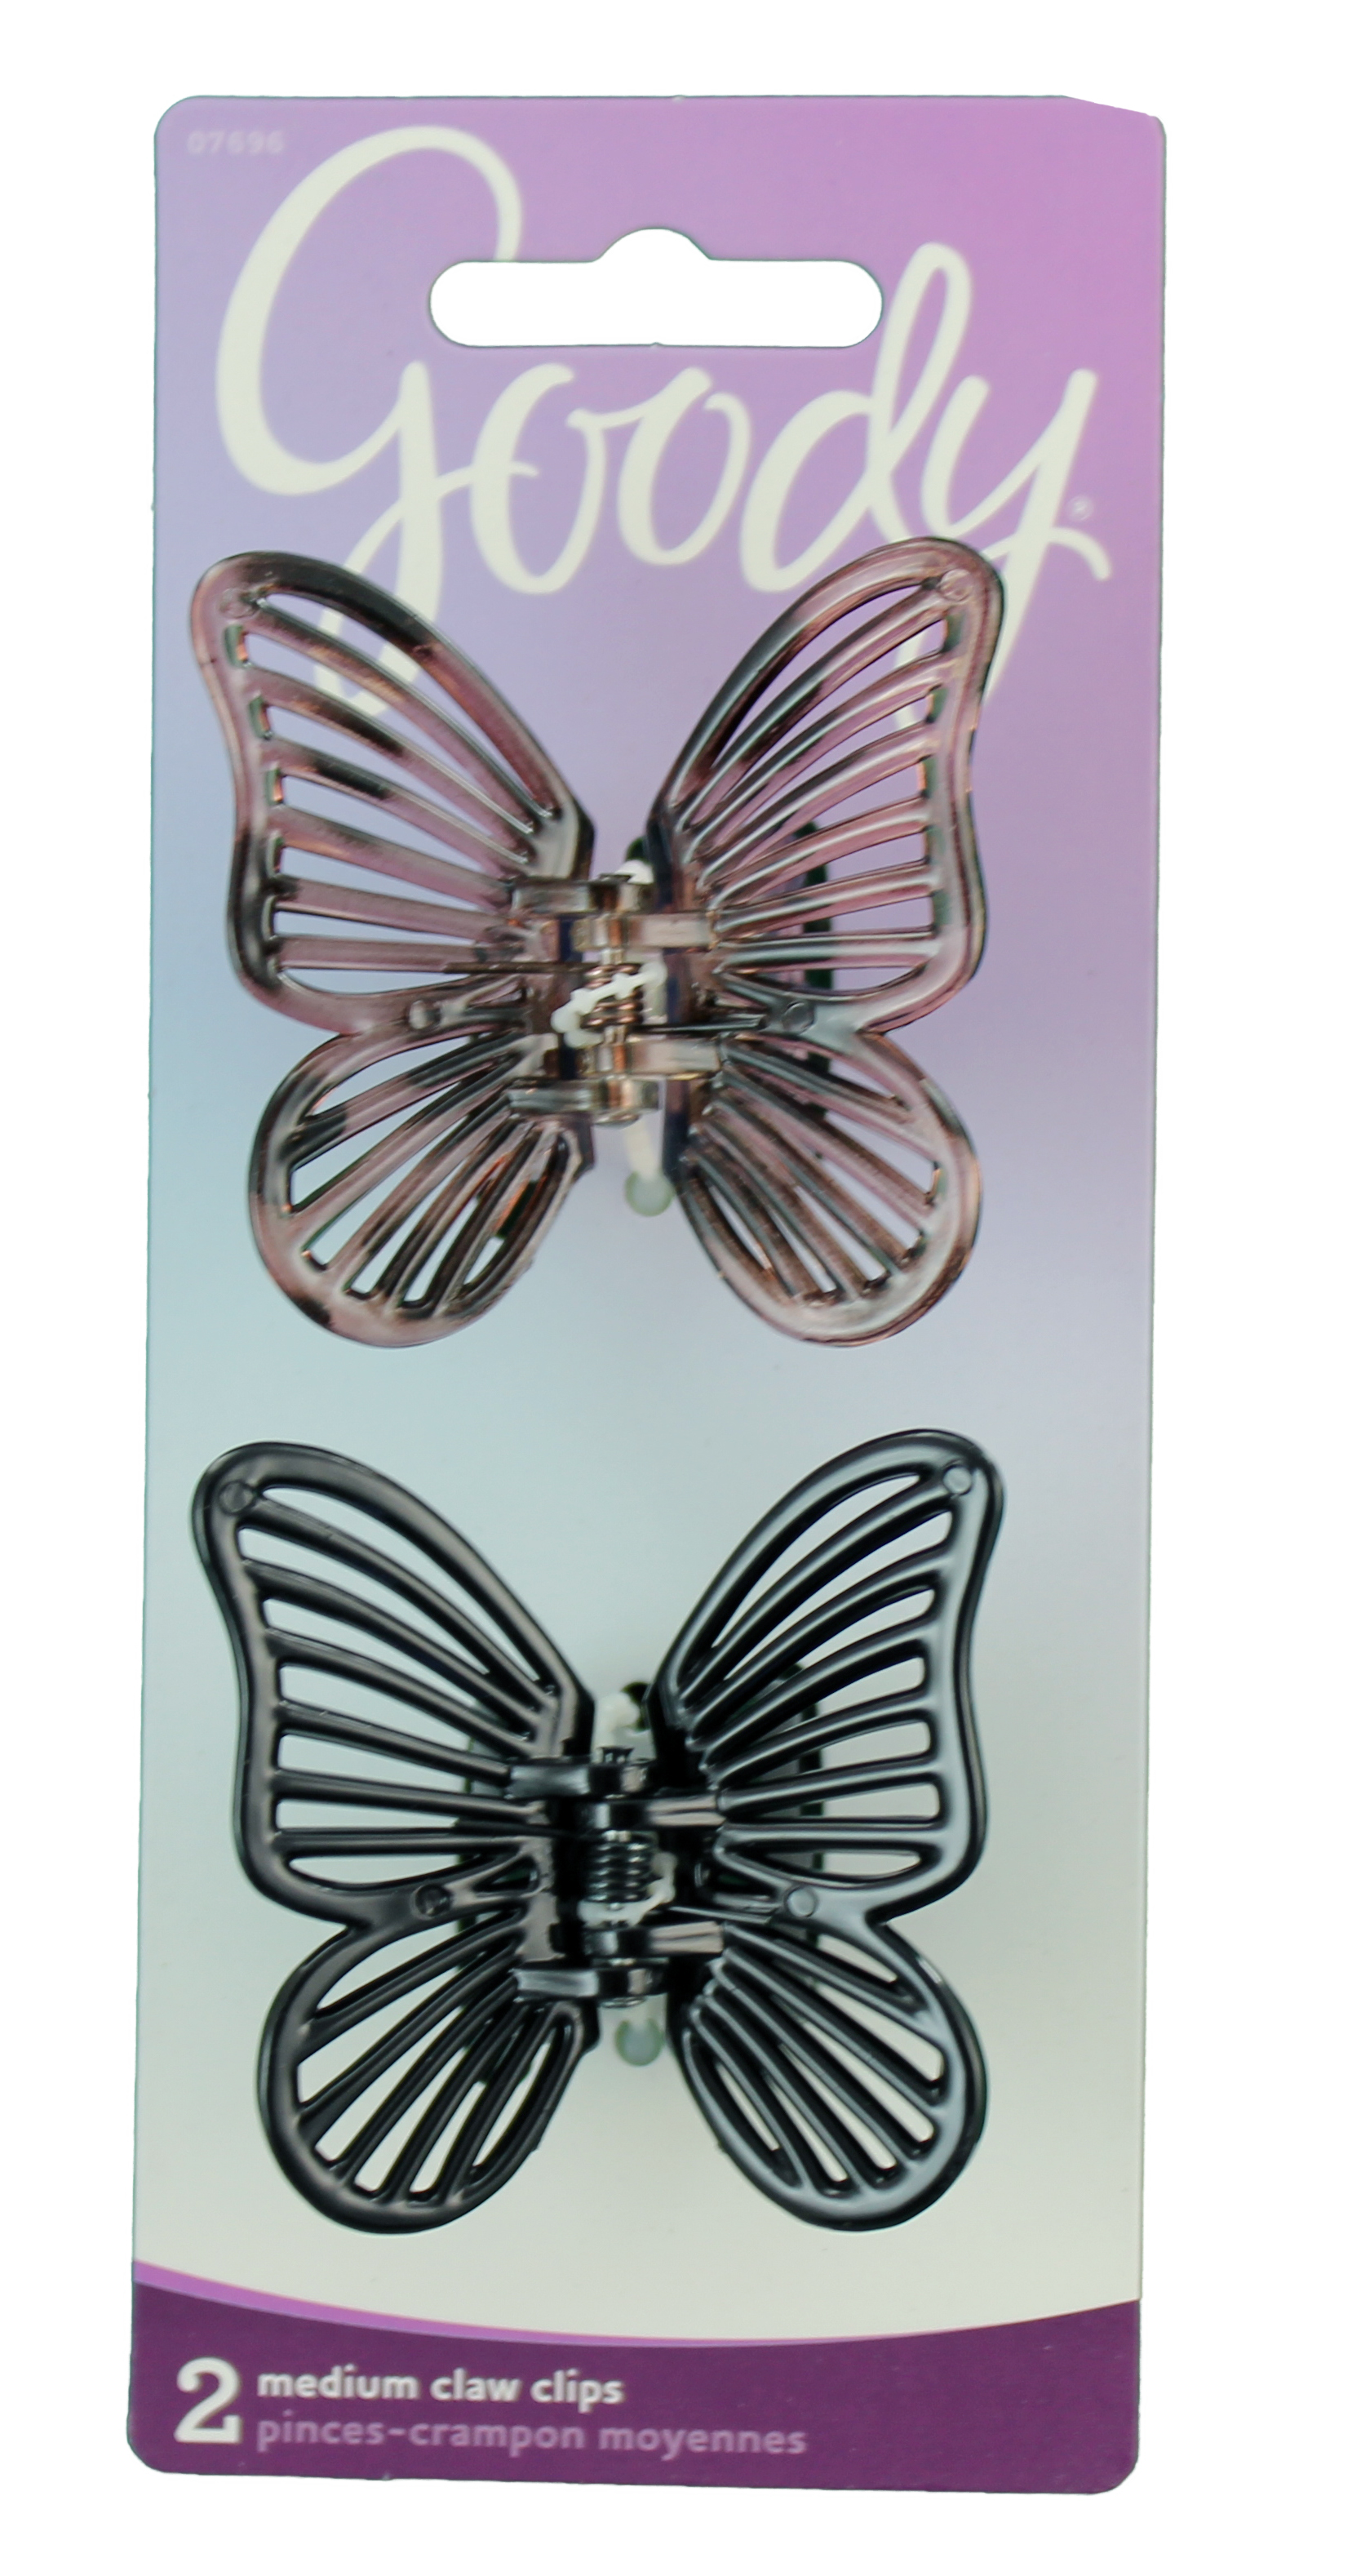 Goody Classics Butterfly Medium Claw Clips, 2 CT